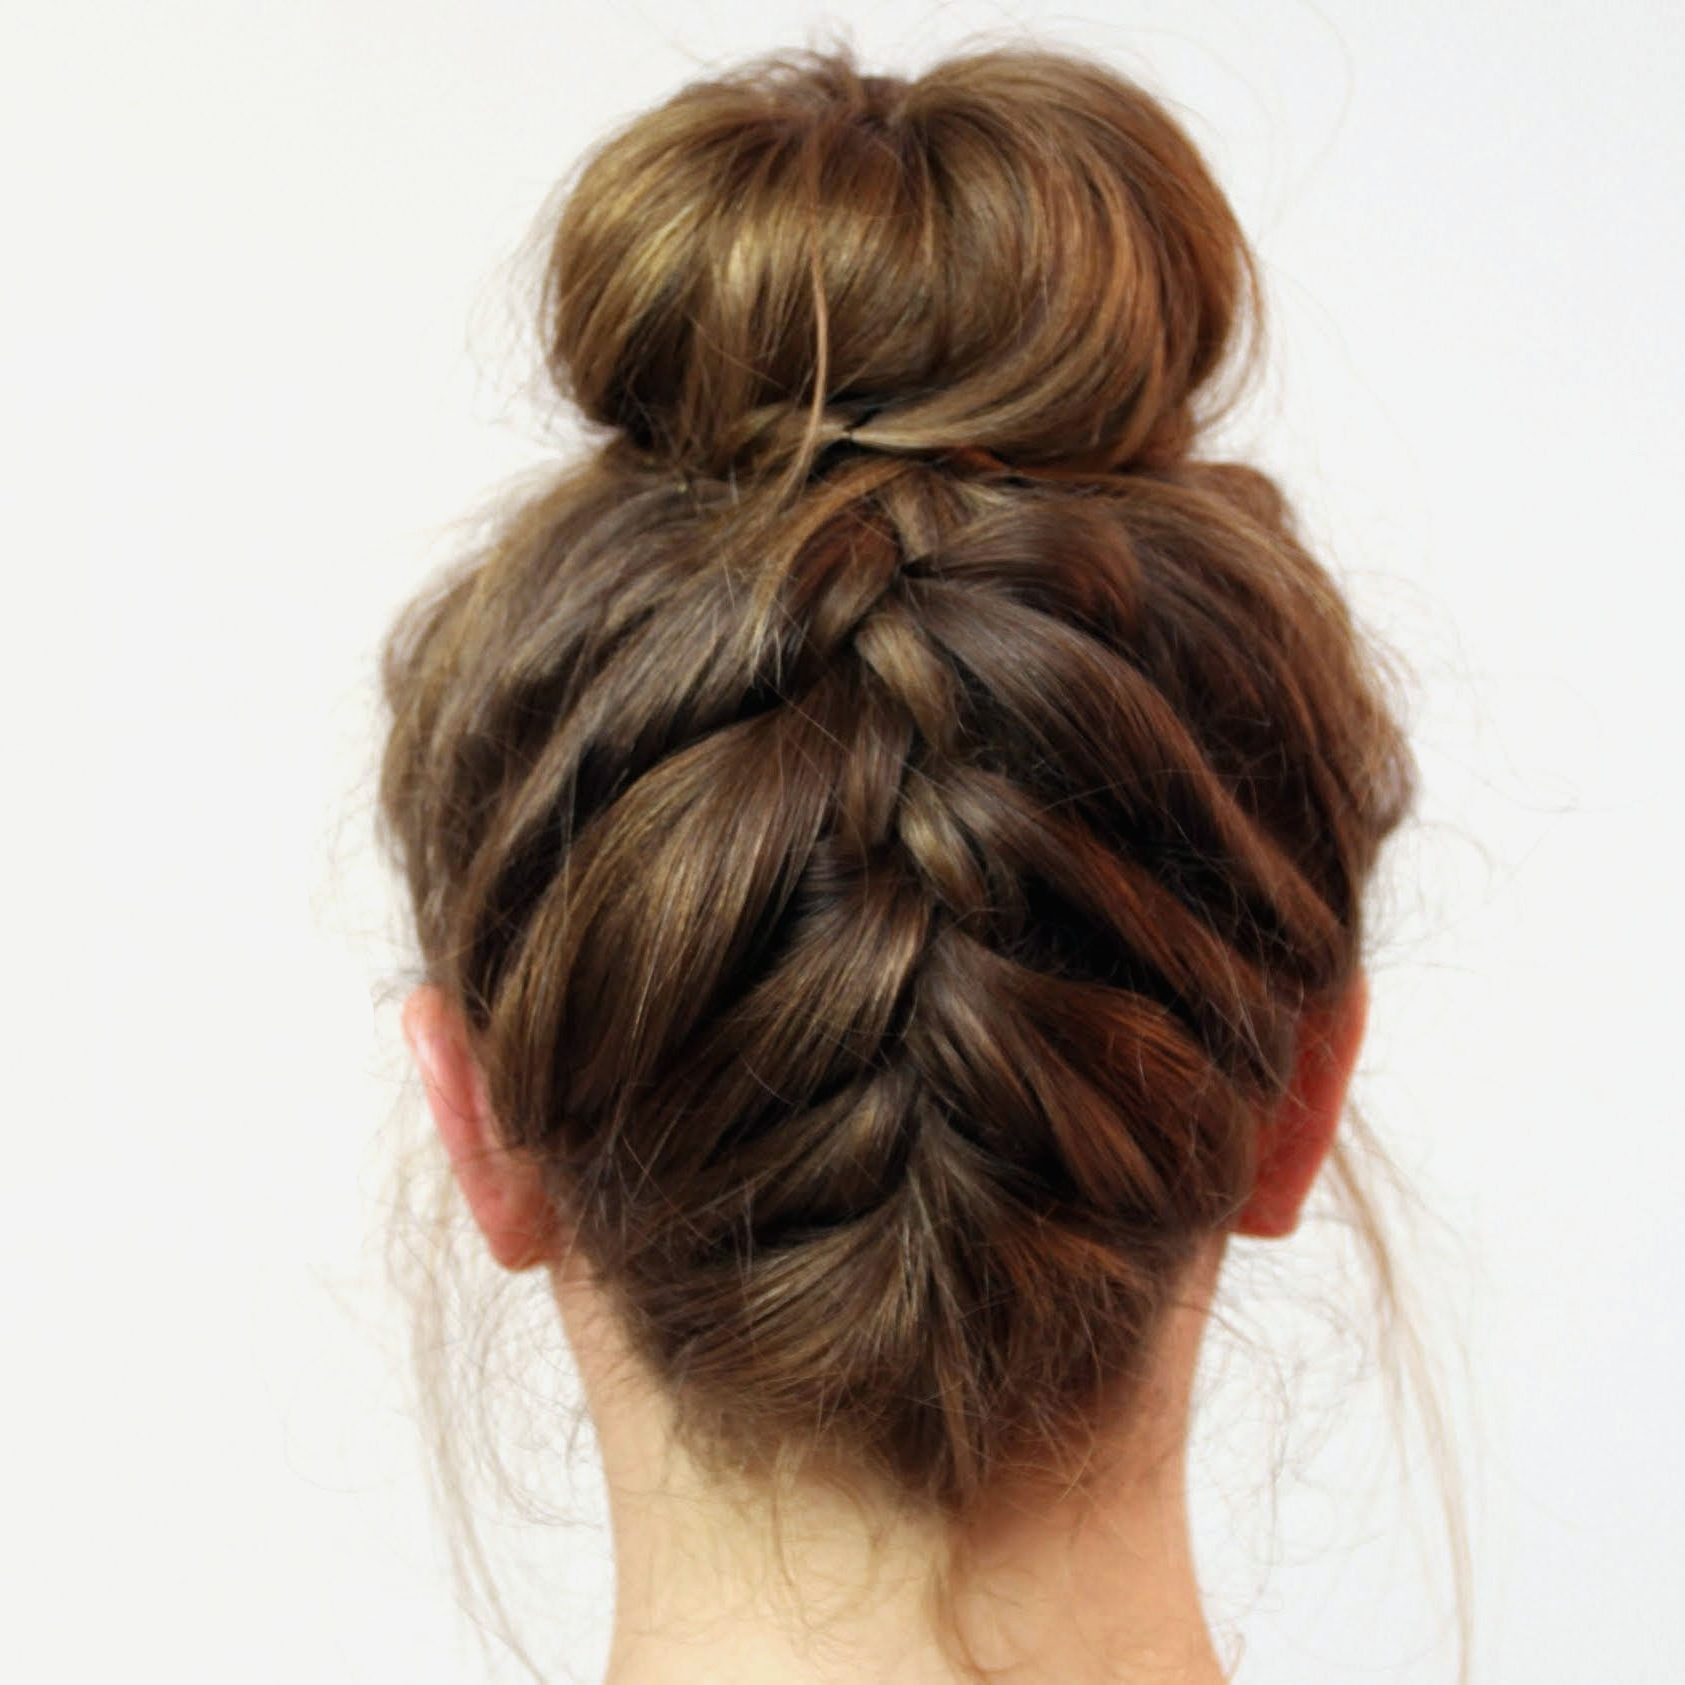 Braid Hairstyles : Best Braided Hairstyles For Swimming For A Round Pertaining To Most Recently Released Braided Hairstyles For Swimming (View 6 of 15)